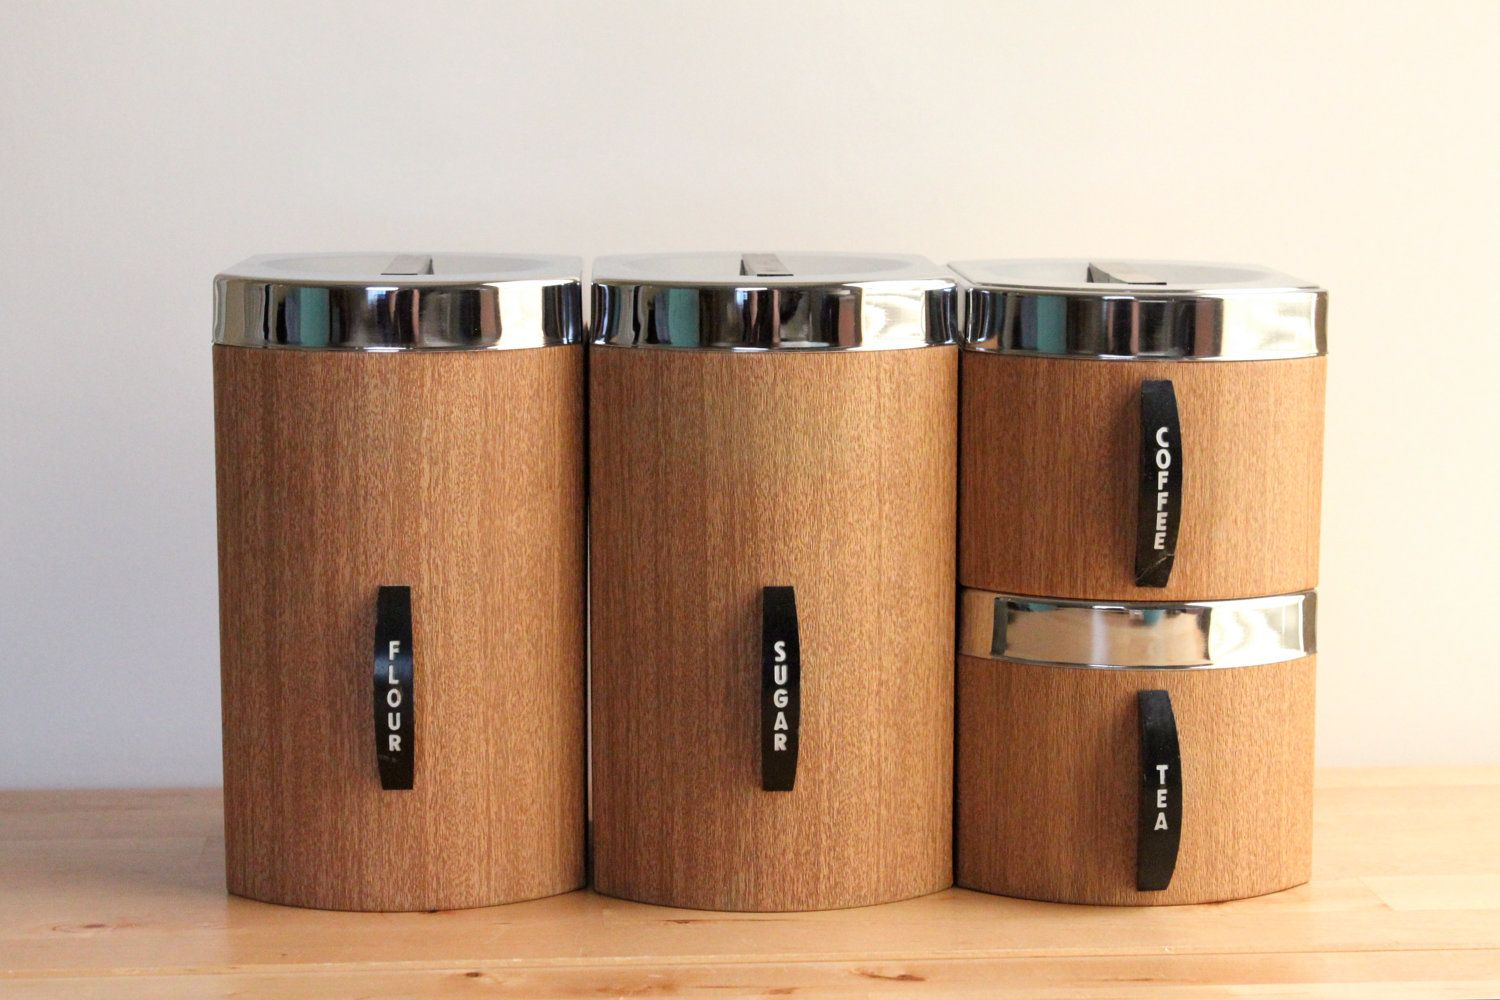 kromex faux bois canisters with flour sugar coffee and tea